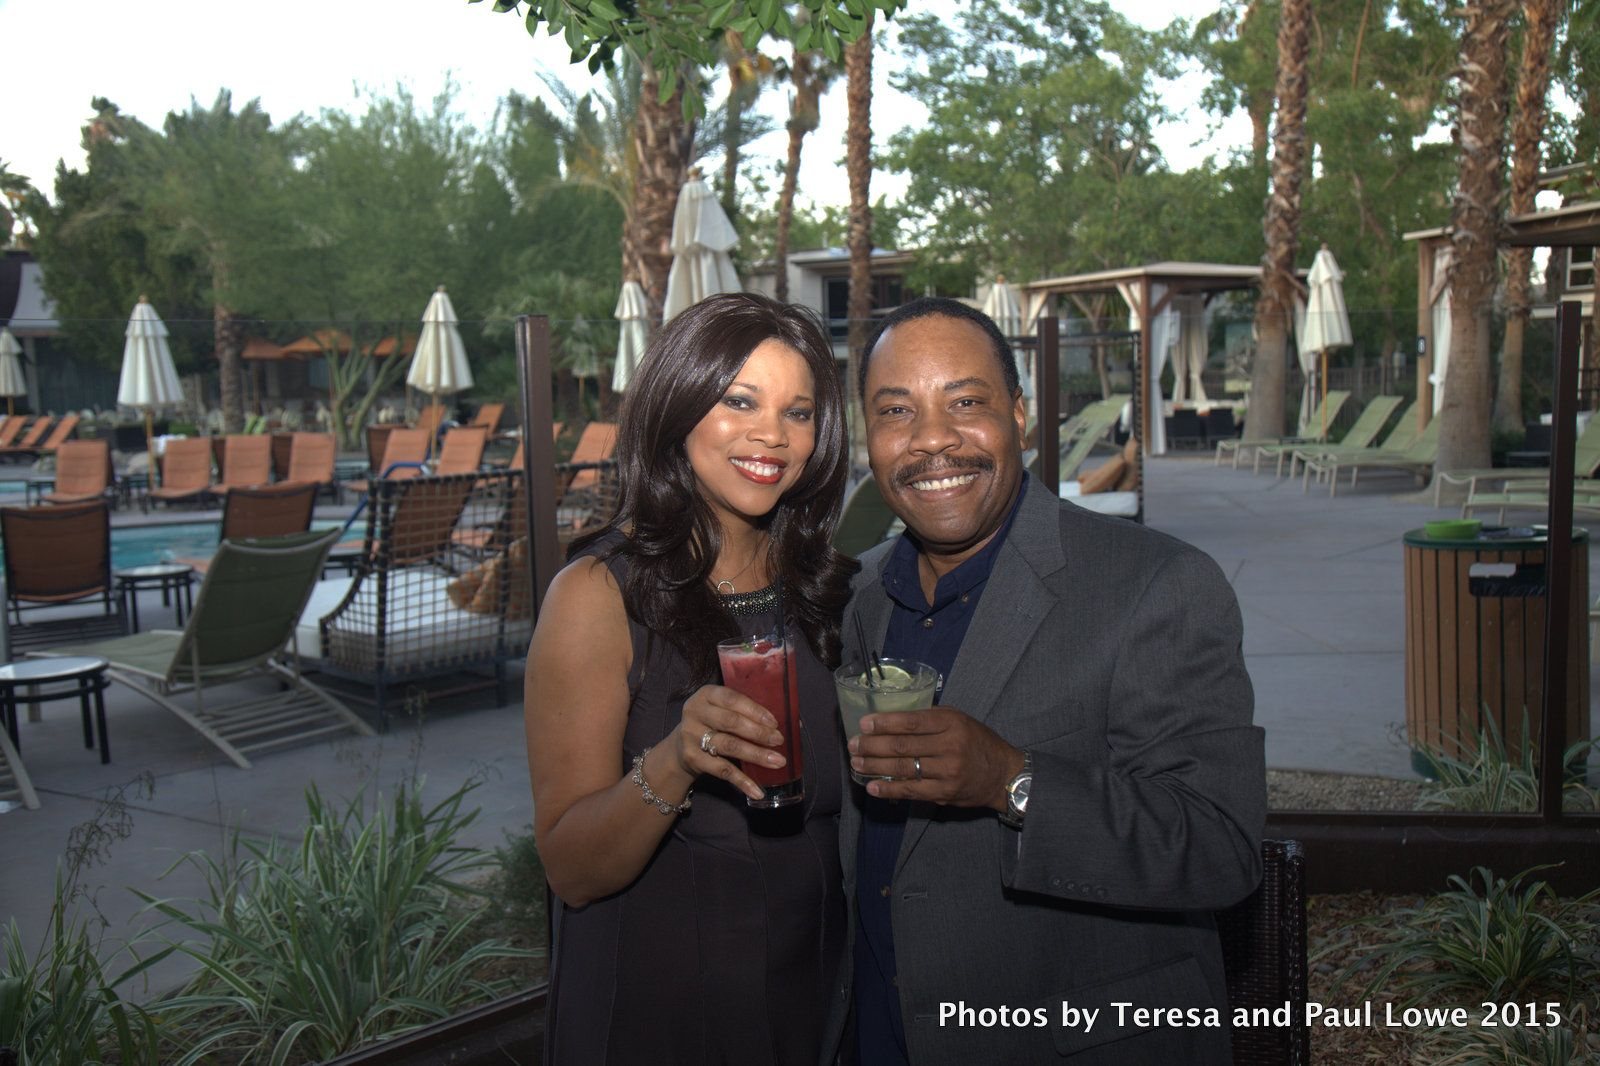 Paul and I enjoyed some of the signature cocktail available from the Sidebar Lounge on our way to a beautiful dining experience at Circa 59, and upscale restaurant located in the beautifully restored 60's inspired Riviera Resort and Spa, located on Palm Springs, CA, just a One Tank ride from Los Angeles, CA.